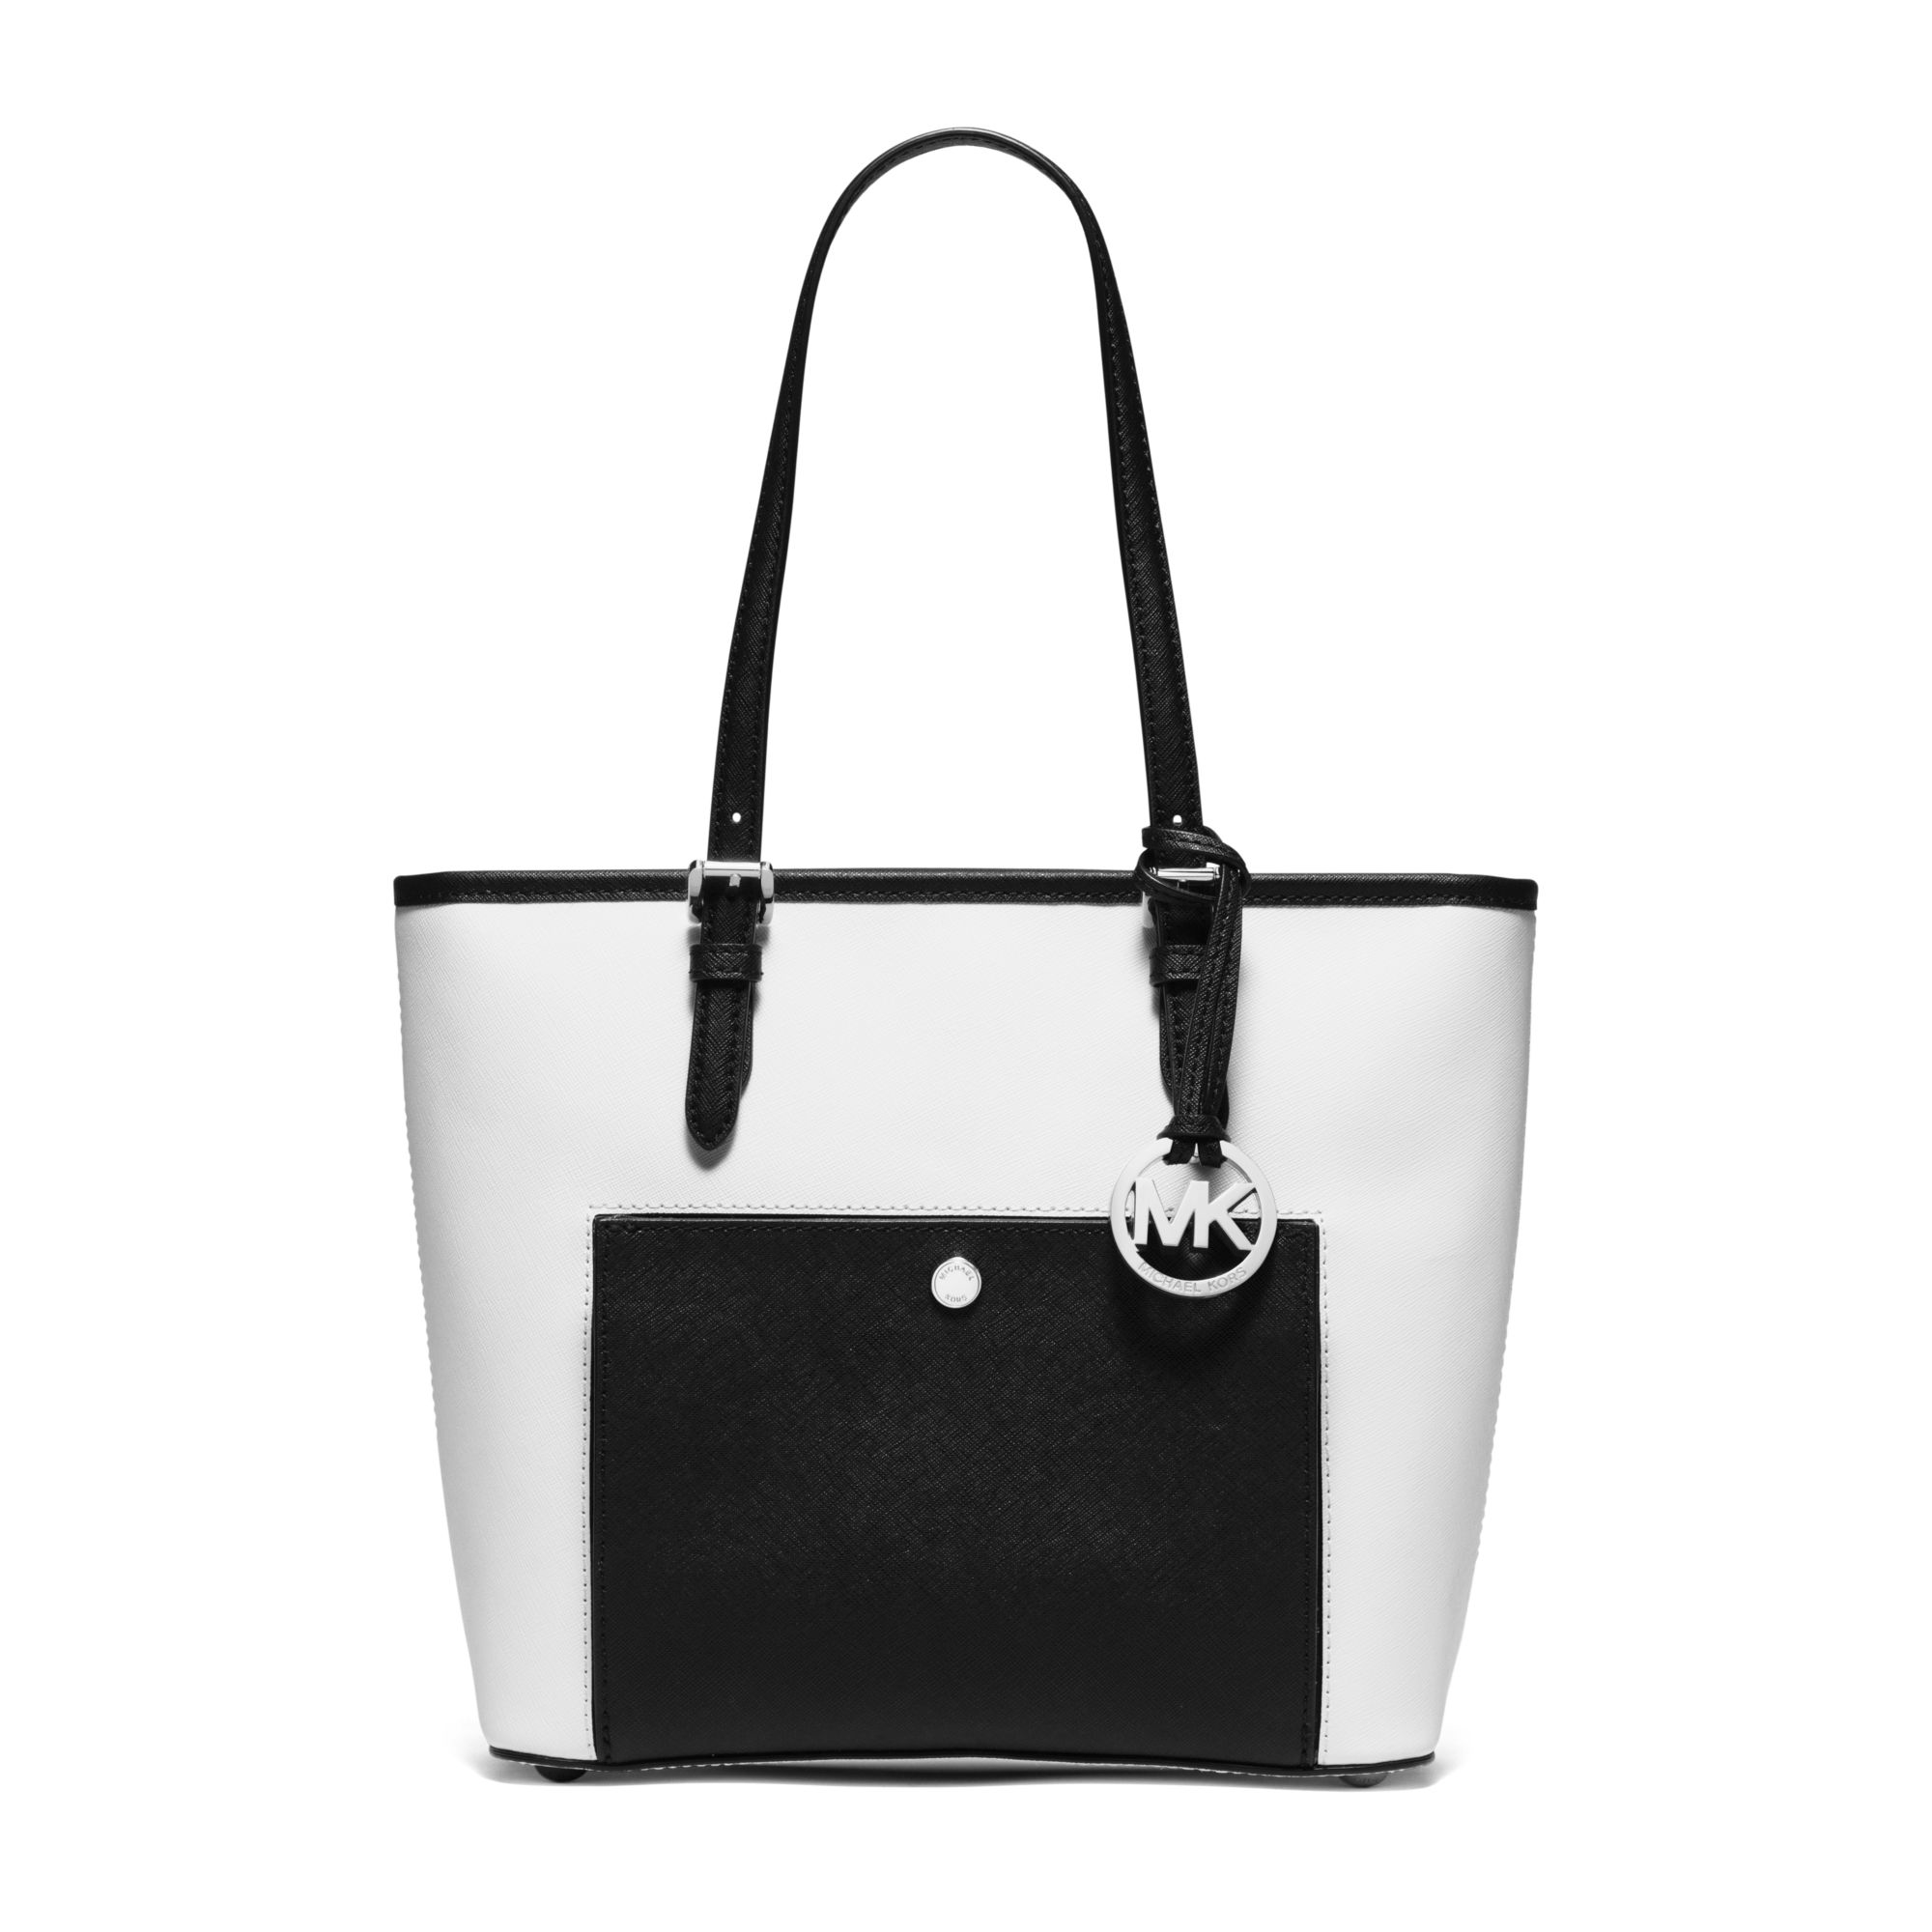 16afcf8f7346 ... get lyst michael kors jet set travel medium saffiano leather tote in  white 53018 610ff